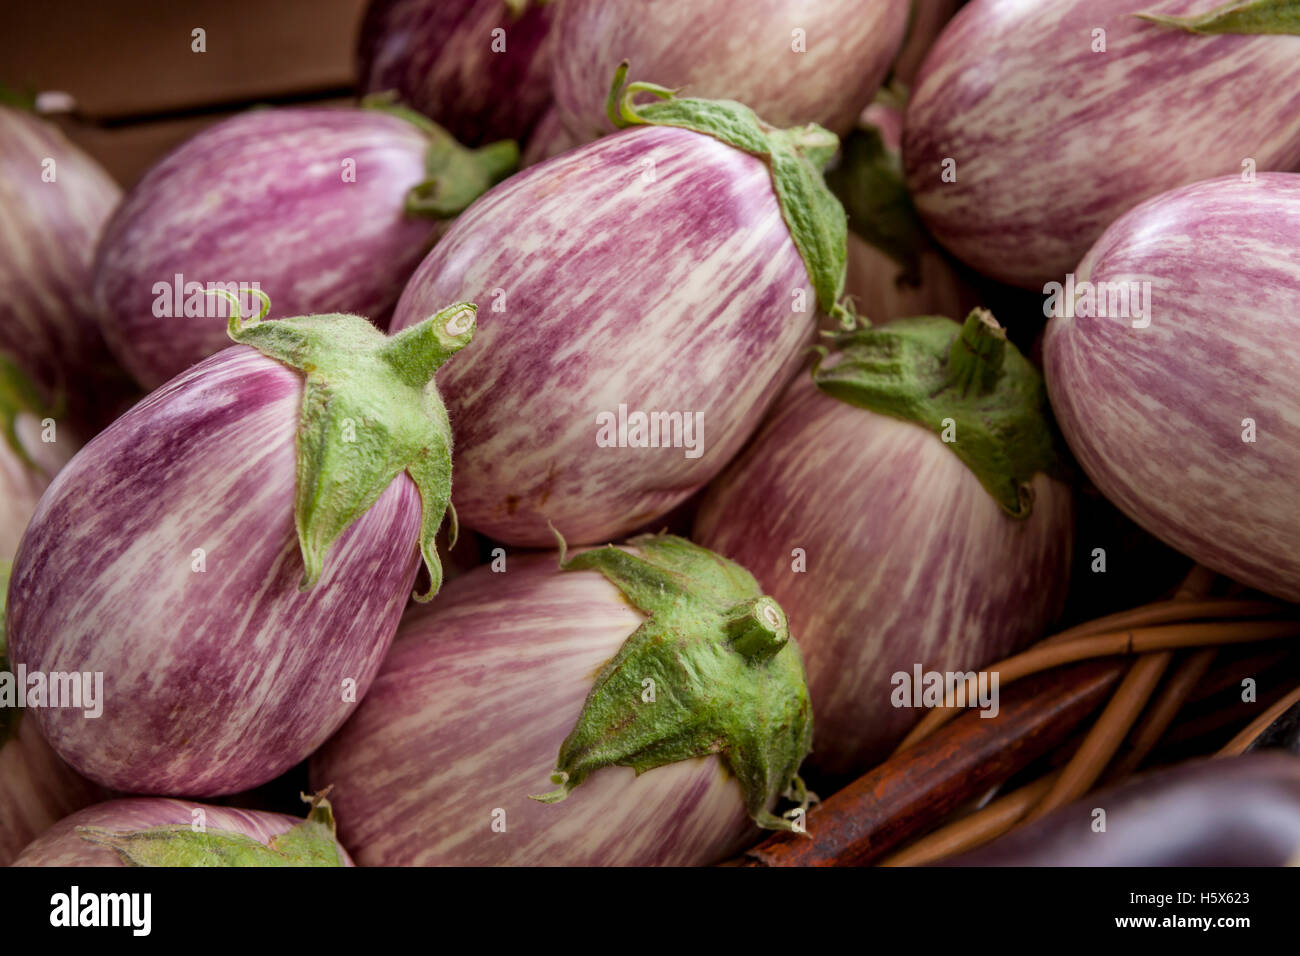 A type of eggplant commonly called zebra or graffiti eggplant. - Stock Image